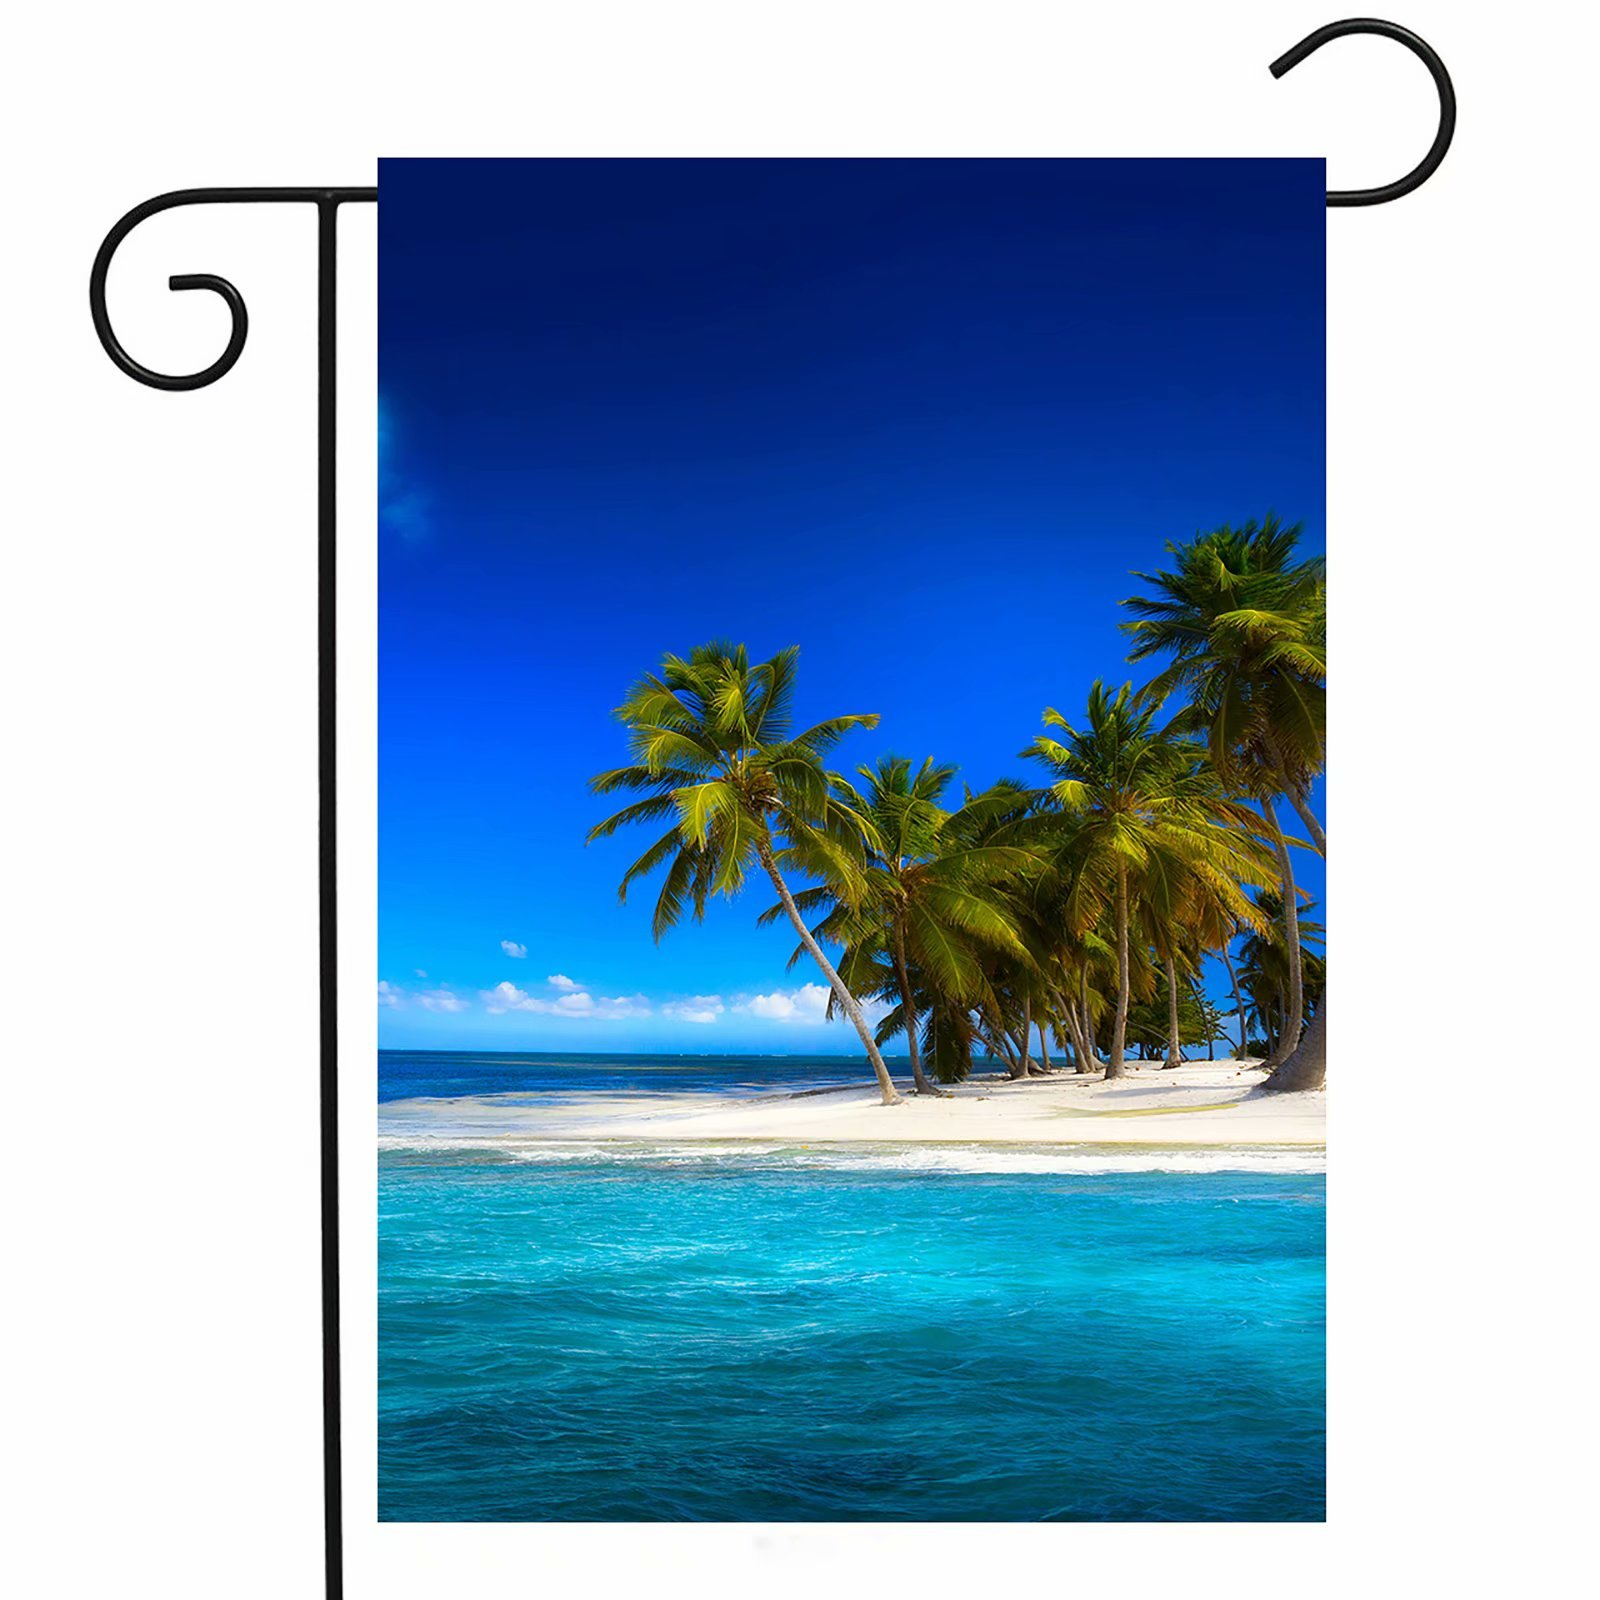 ShineSnow Summer Holiday Beach Palm Tree Garden Yard Flag 12''x 18'' Double Sided, Hawaii Tropical Island Seascape Ocean Blue Polyester Welcome House Flag Banners for Patio Lawn Outdoor Home Decor by ShineSnow